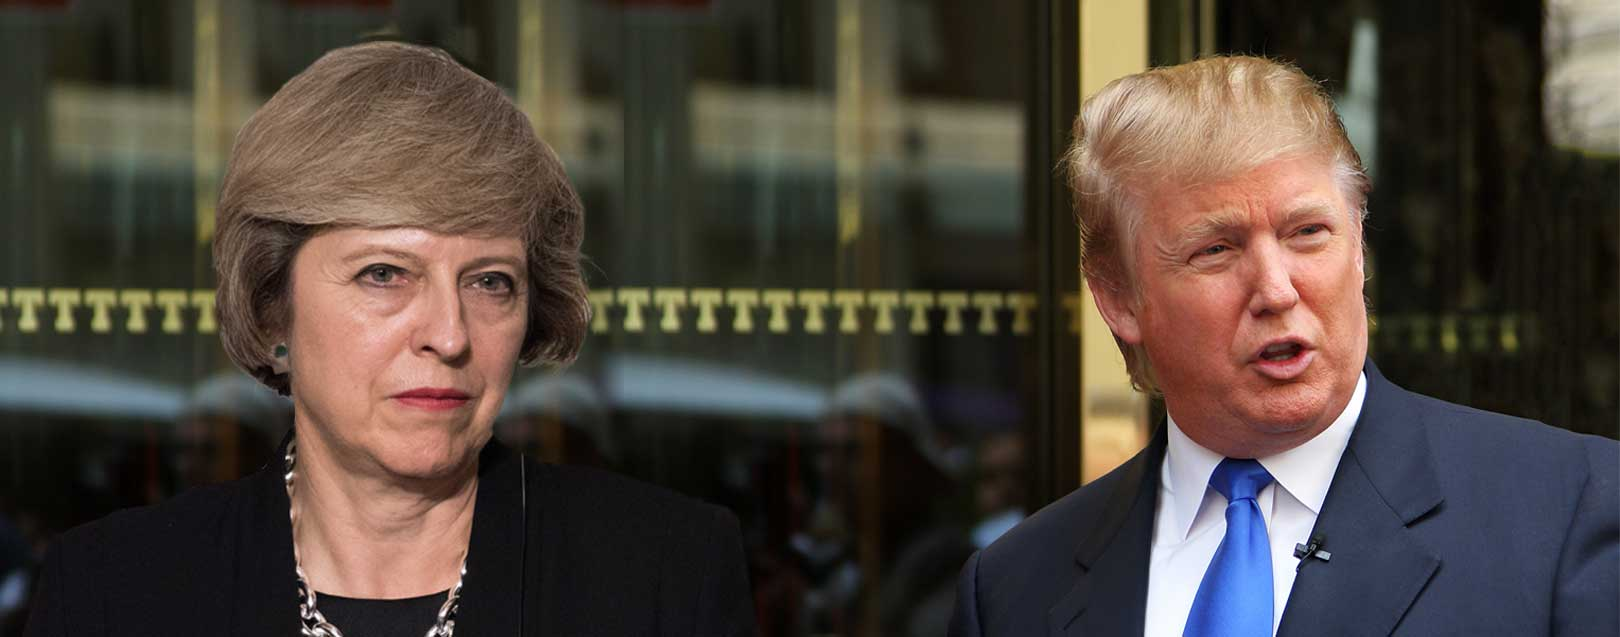 Trump and Theresa agree to increase trade between the two countries